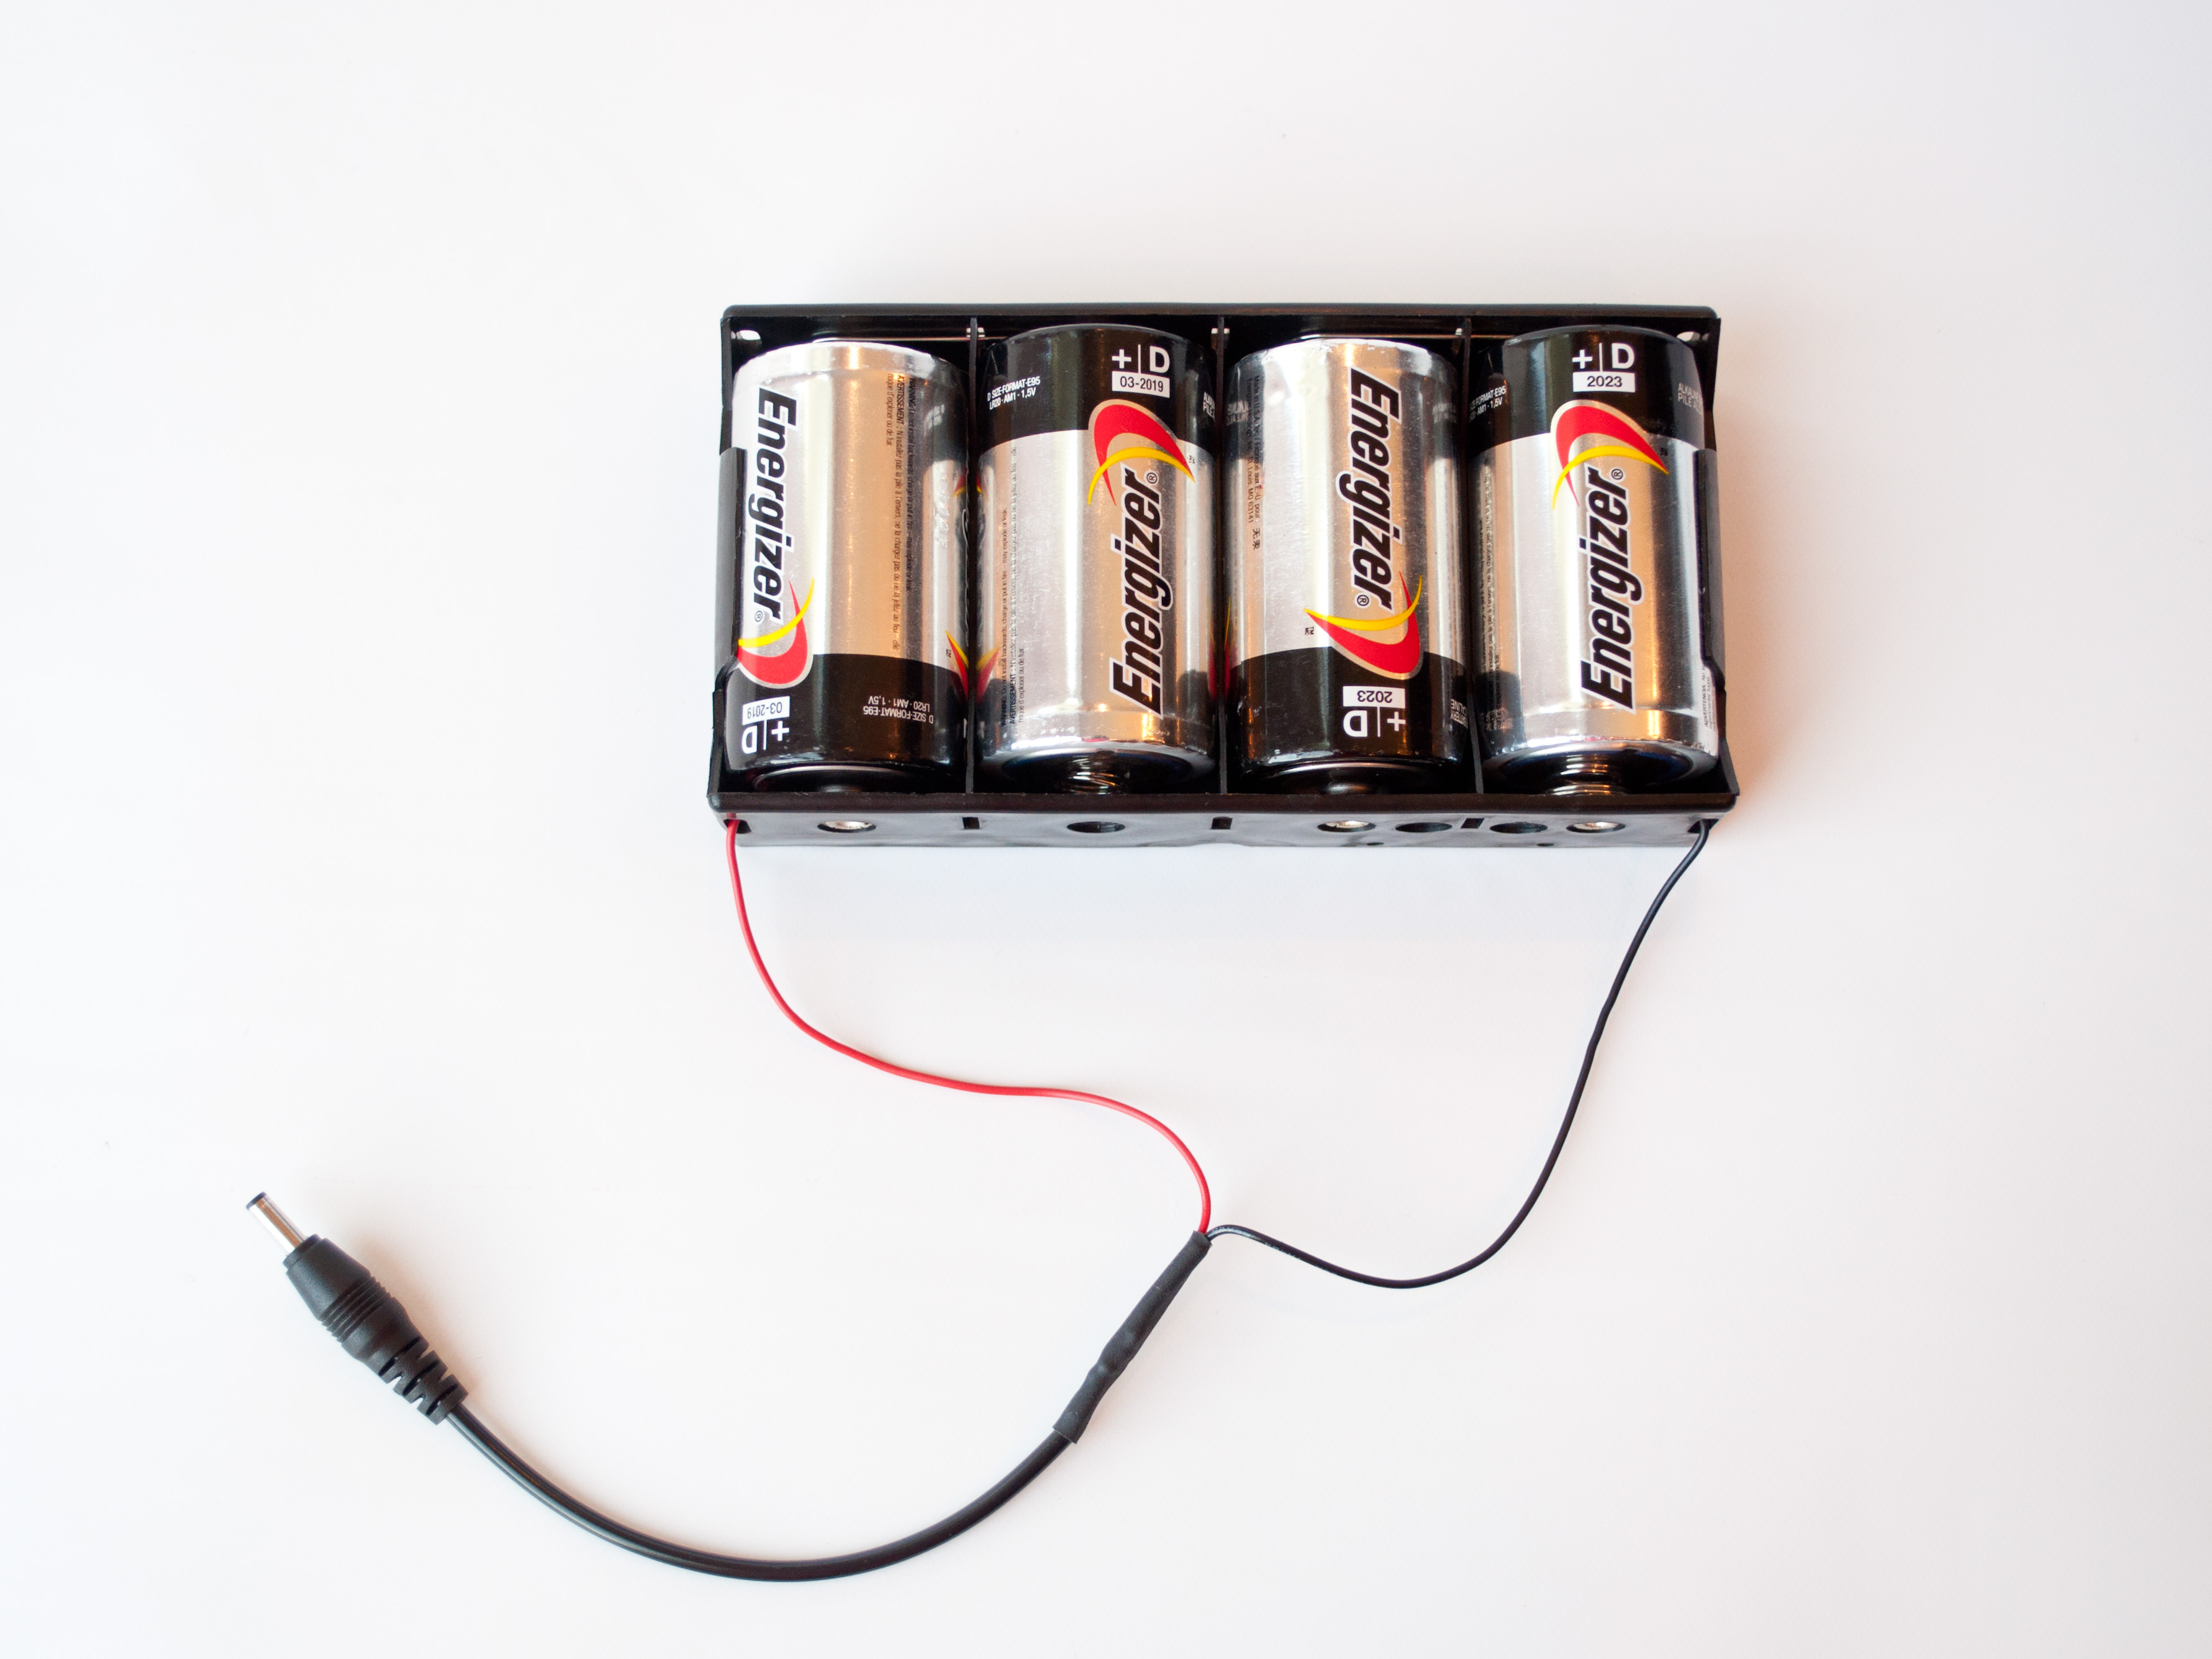 Extended 4D Battery Pack for Lawmate DVR Recorders